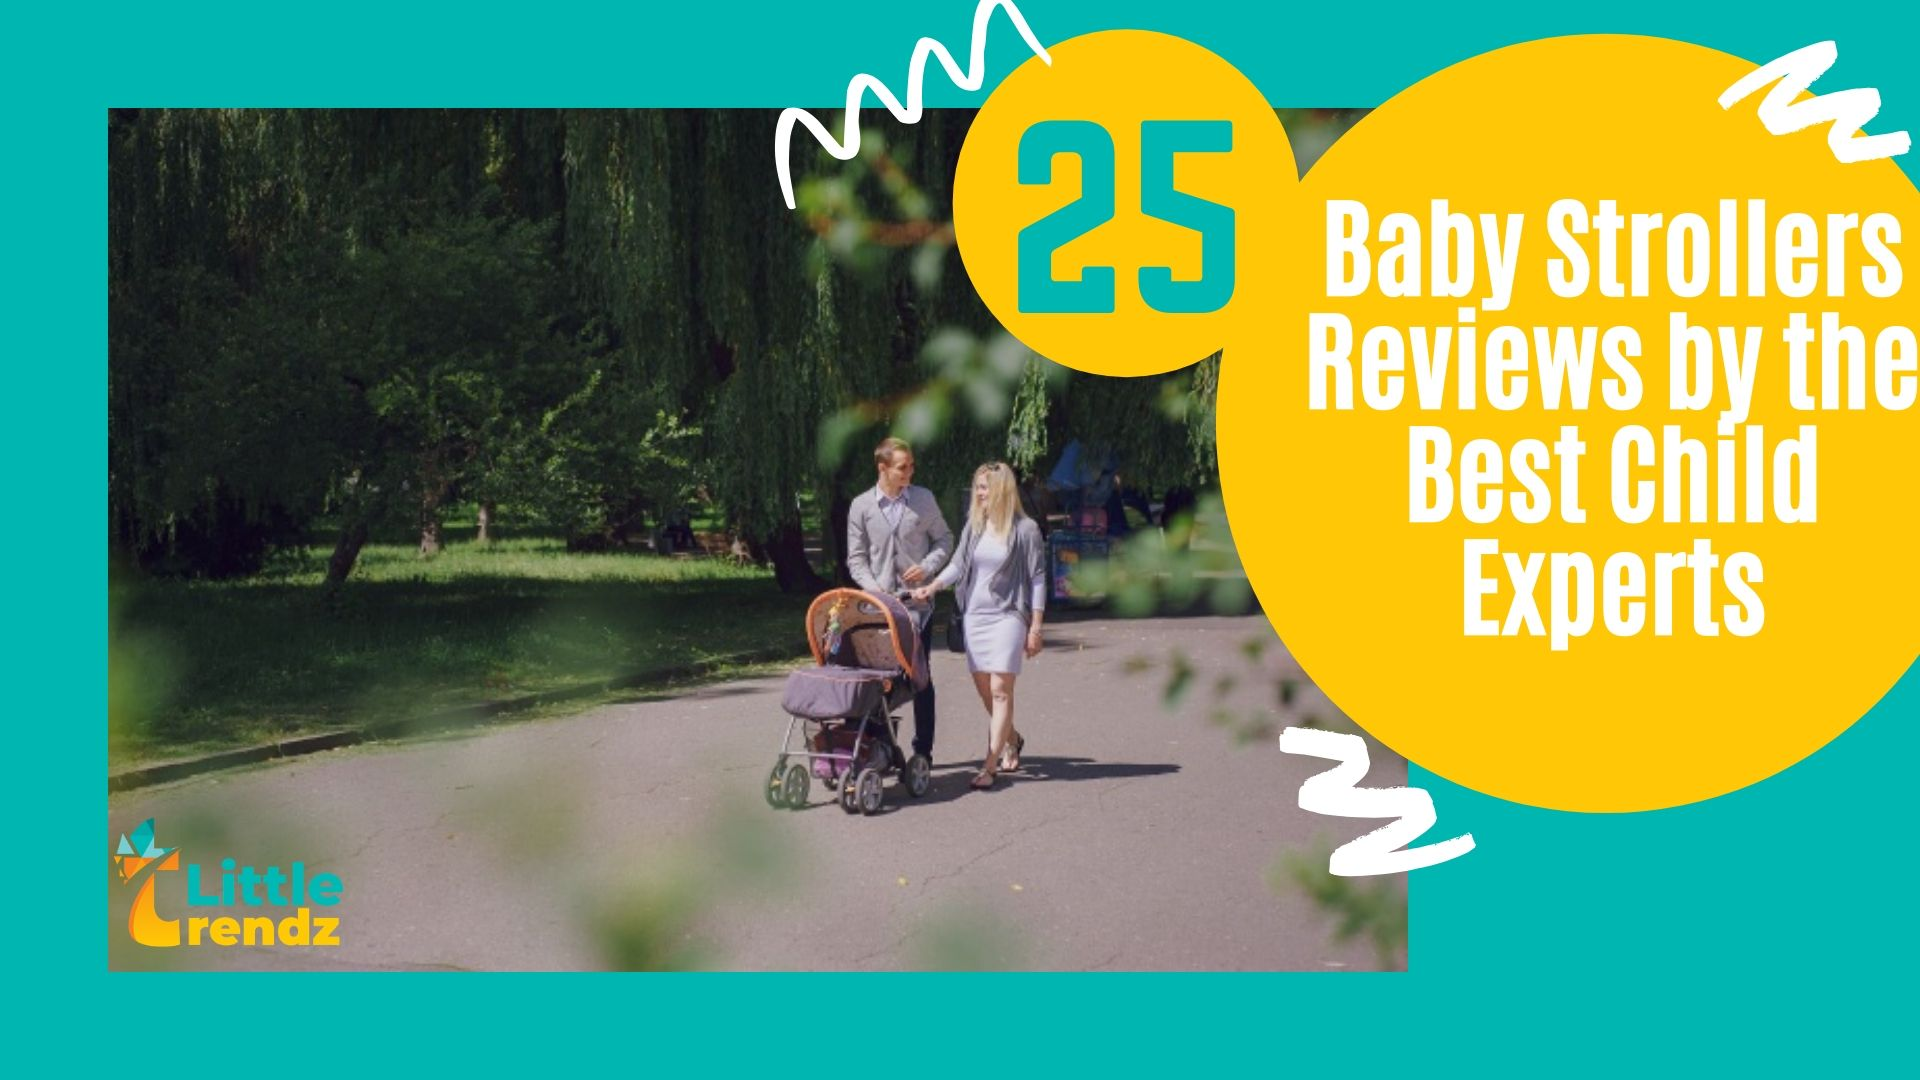 25 Baby Stroller Reviews by the Best Child Experts